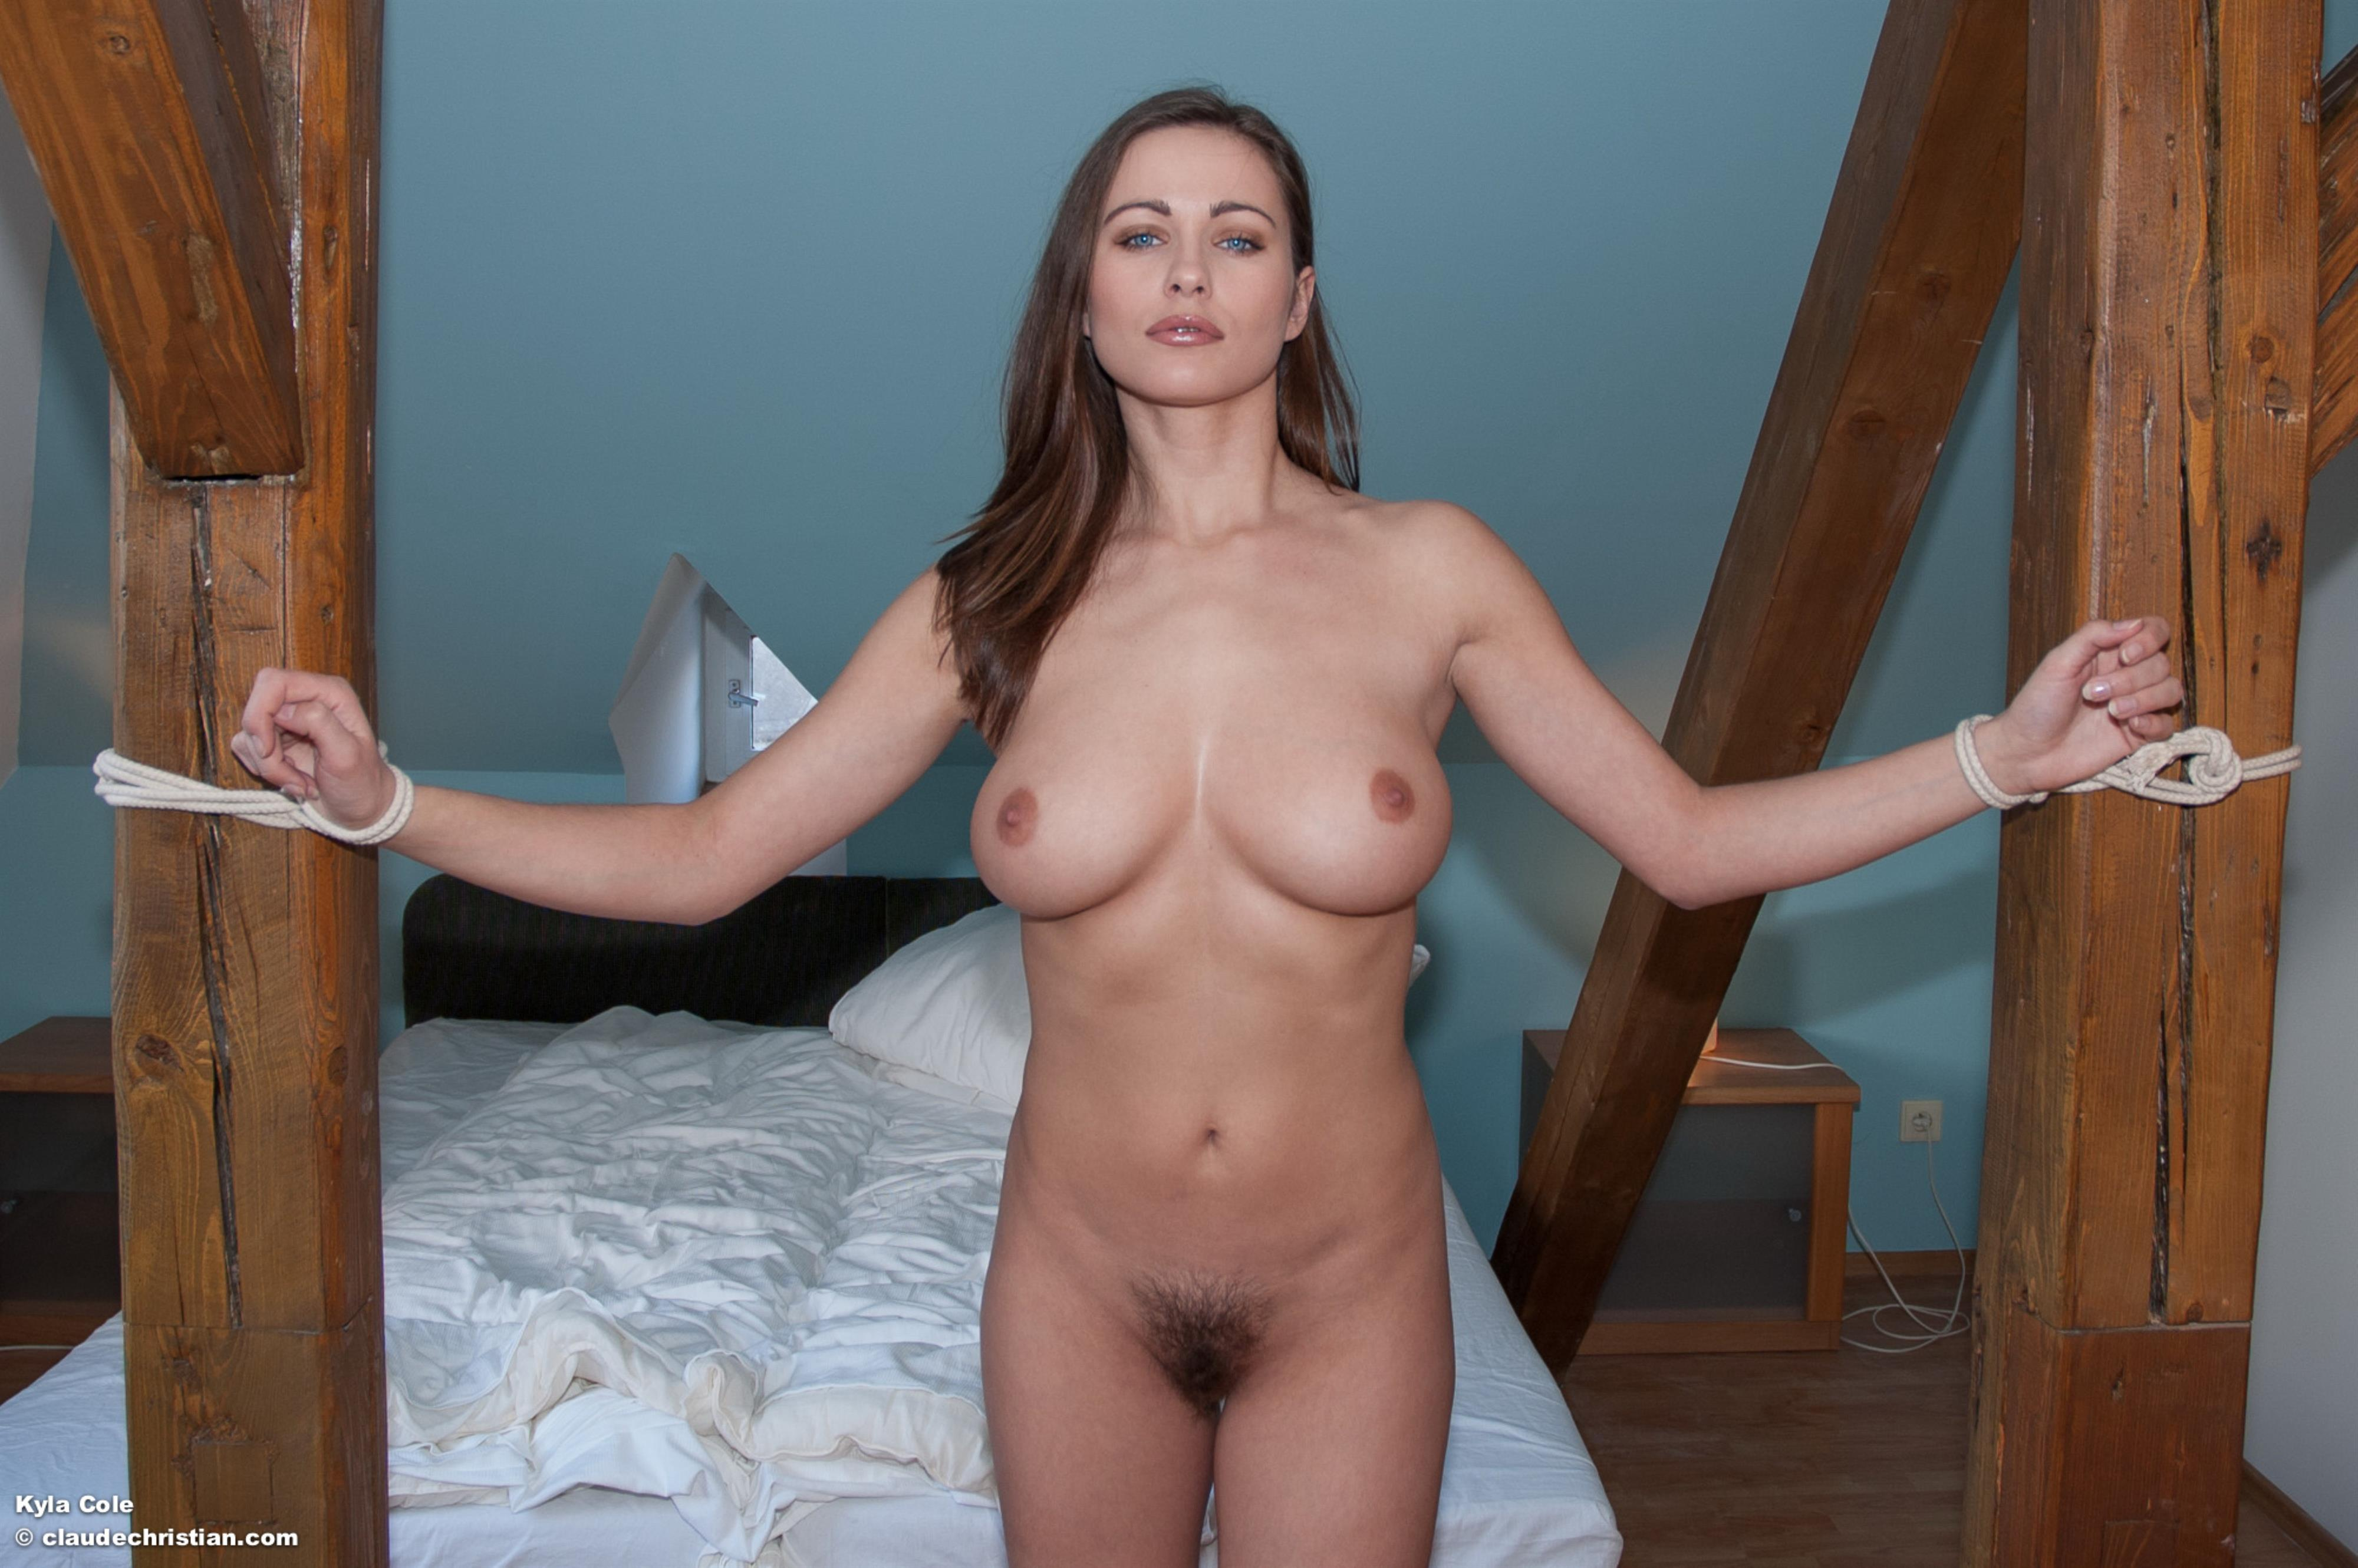 nude virgin american girl with pussy